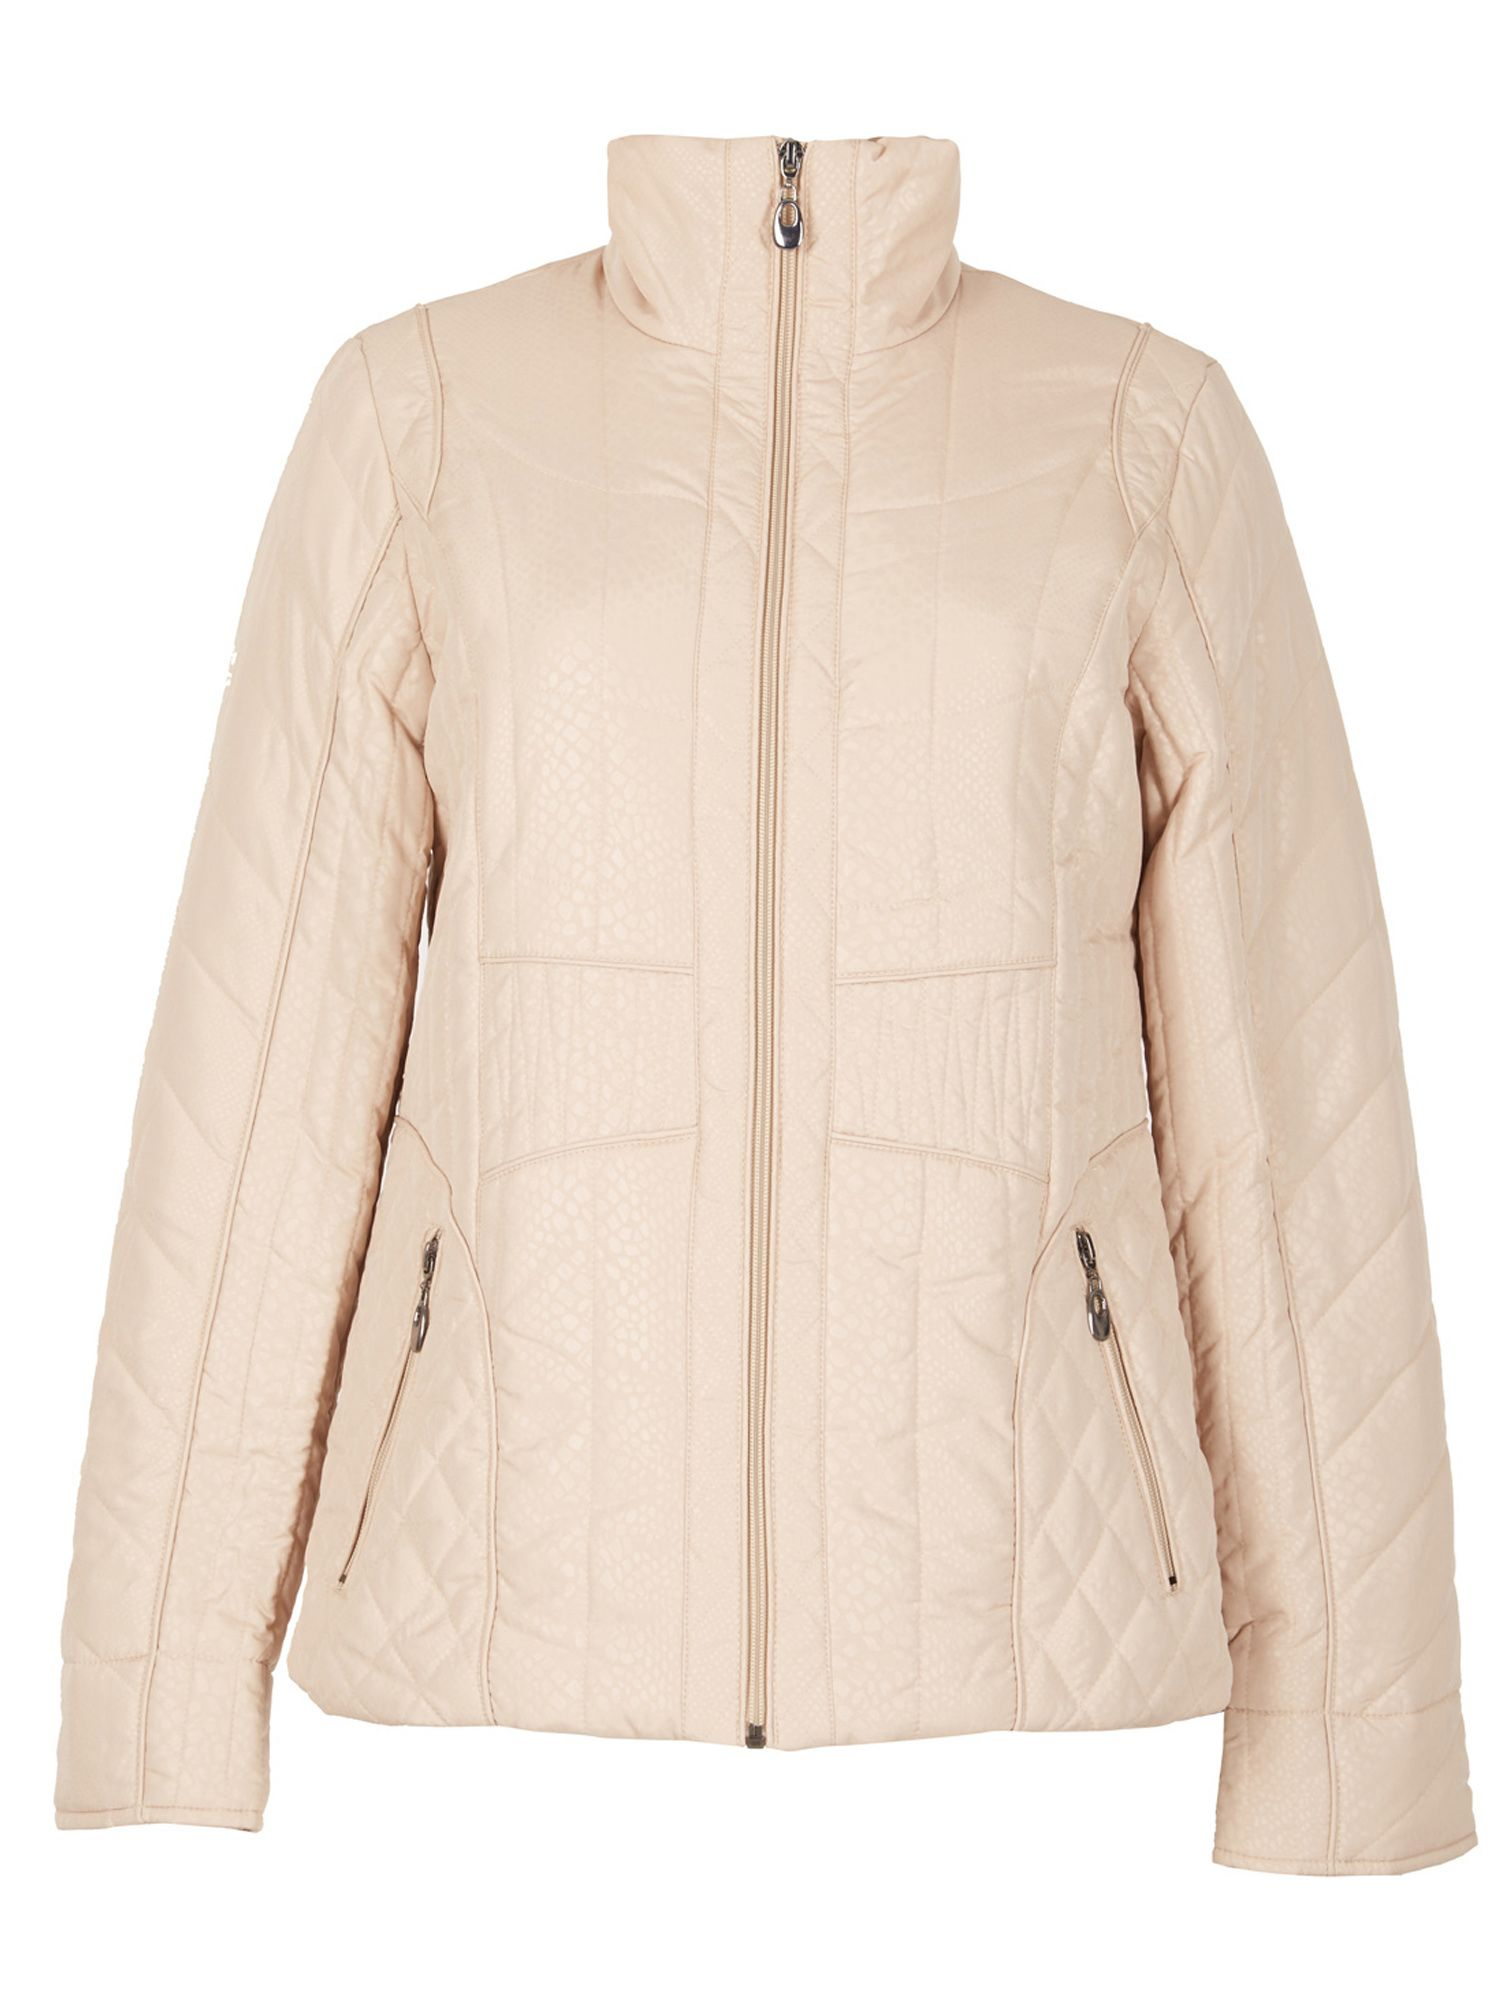 David Barry Ladies Jacket, Stone